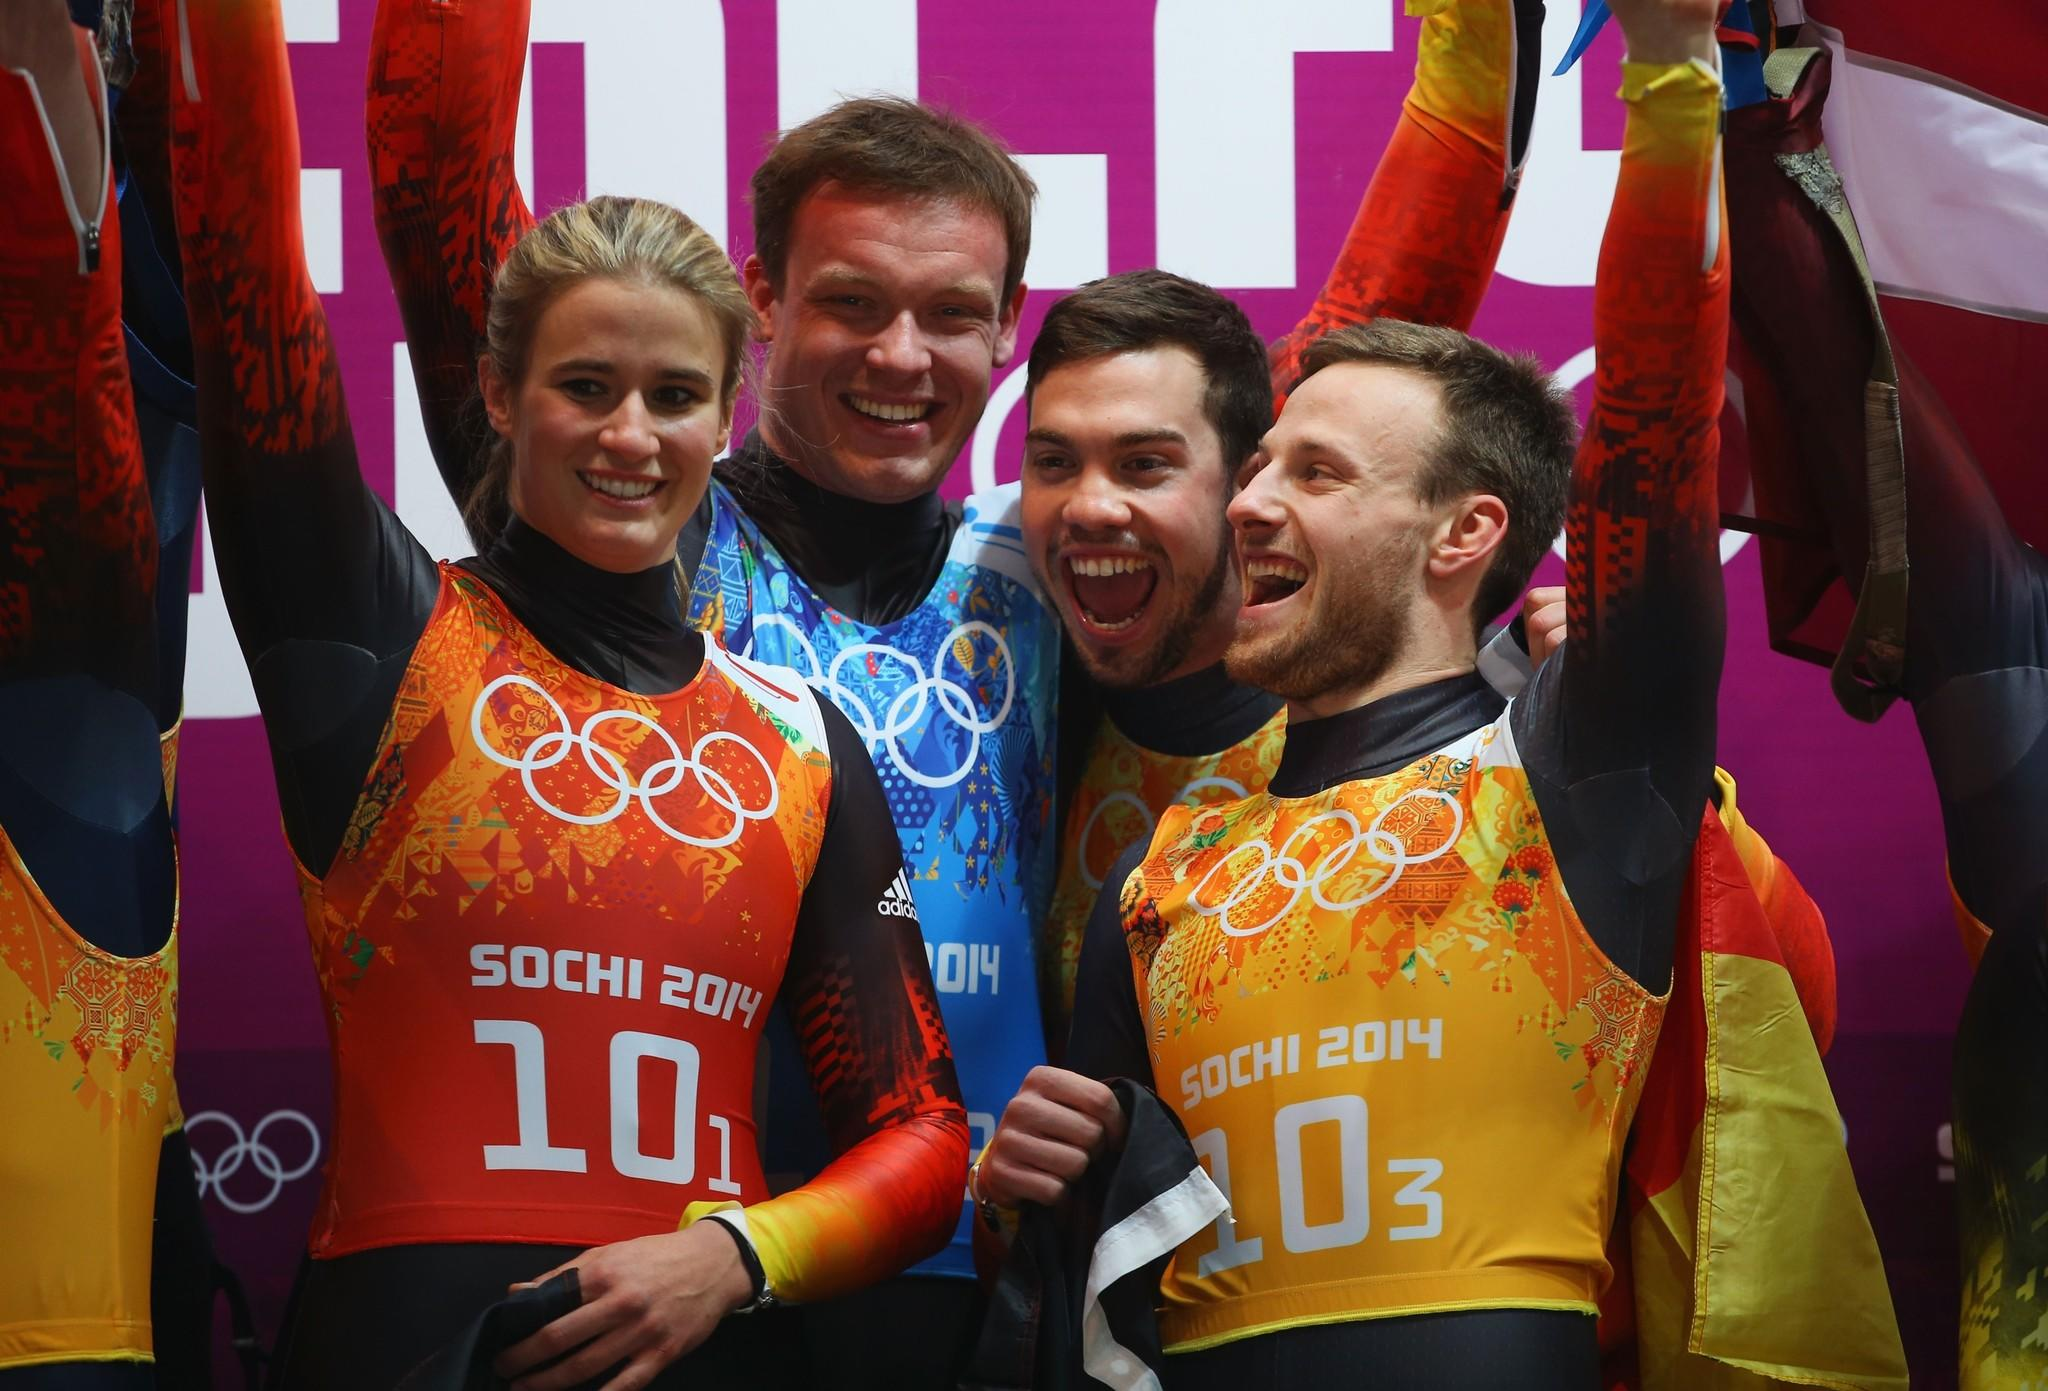 Gold medalists (from left) Natalie Geisenberger, Felix Loch, Tobias Wendl and Tobias Arlt of Germany celebrate after the Luge Relay.